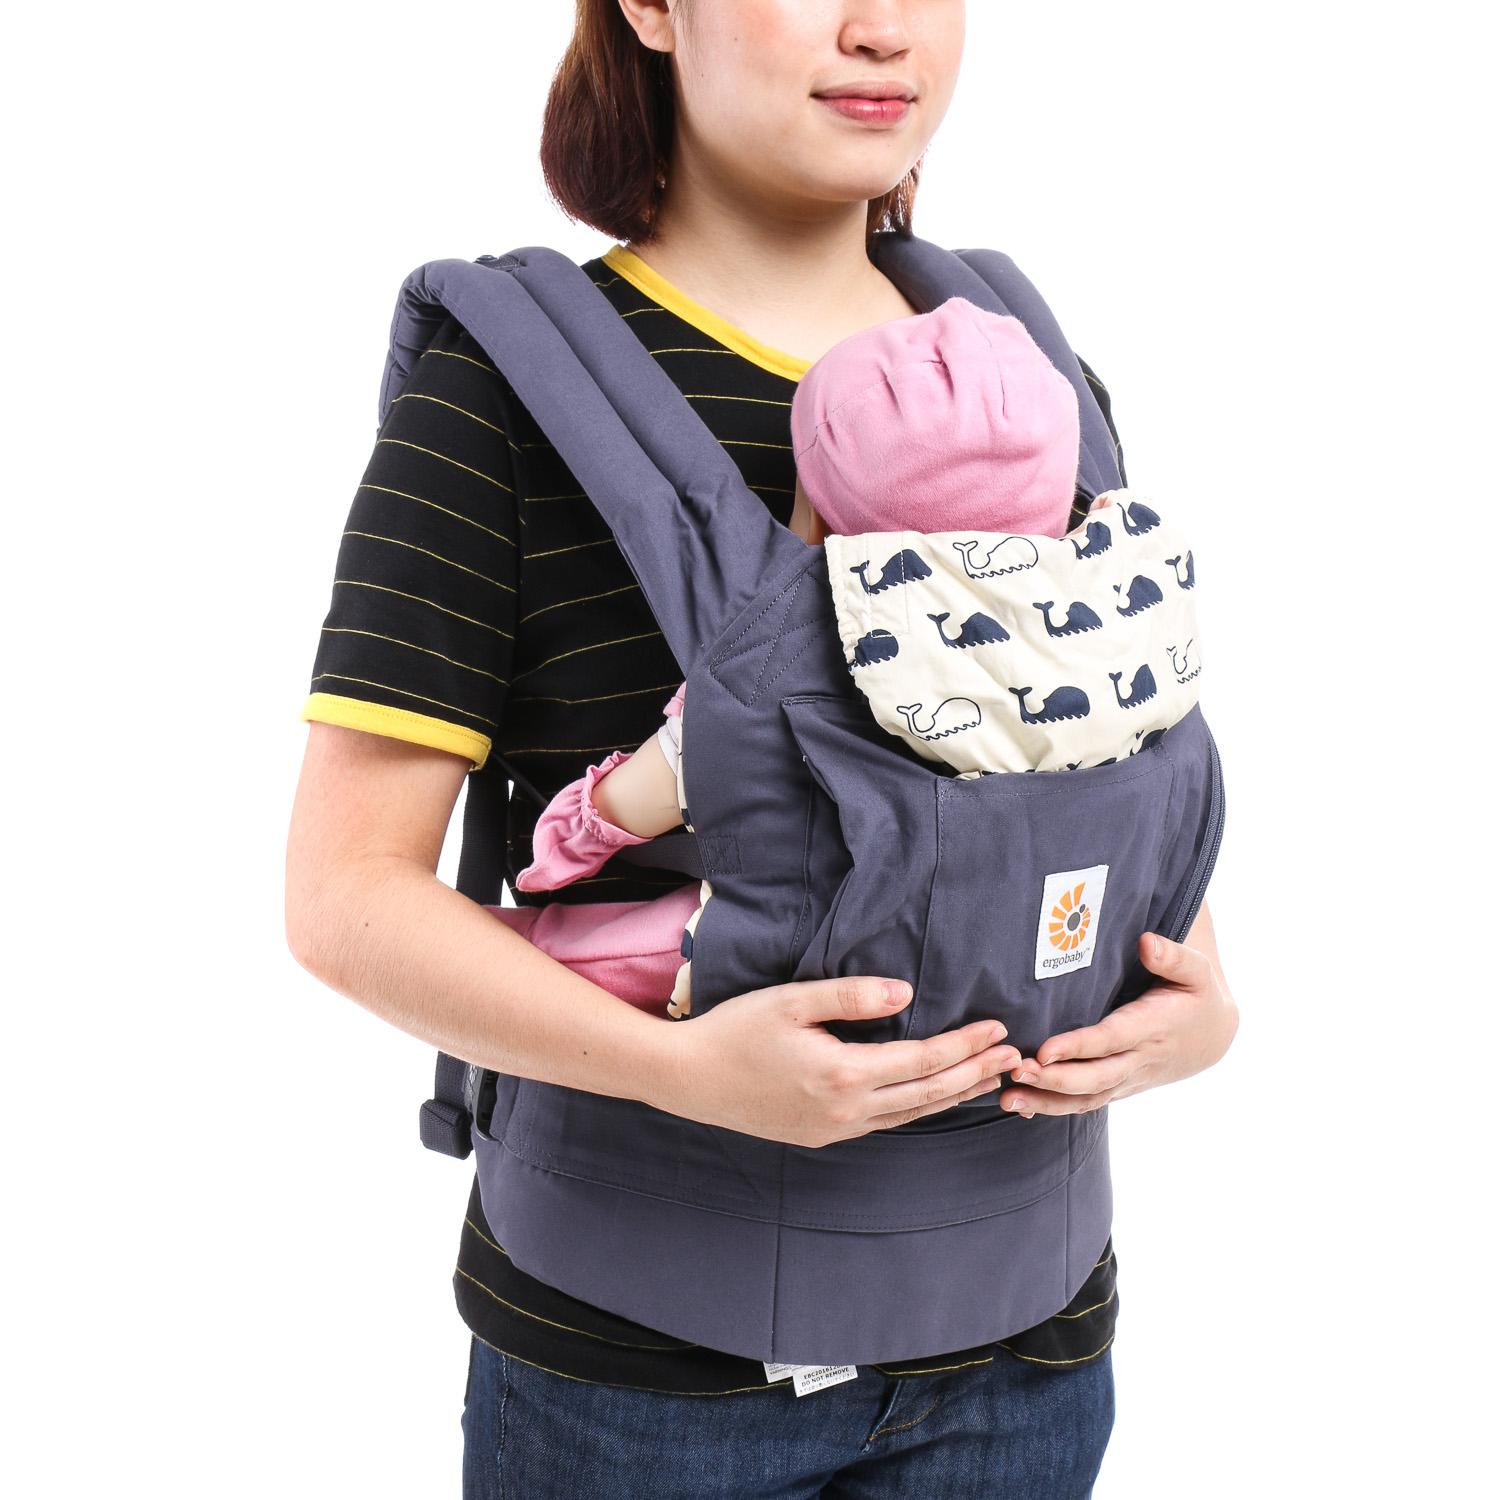 e314485f936 Ergobaby Philippines  Ergobaby price list - Baby Carrier for sale ...